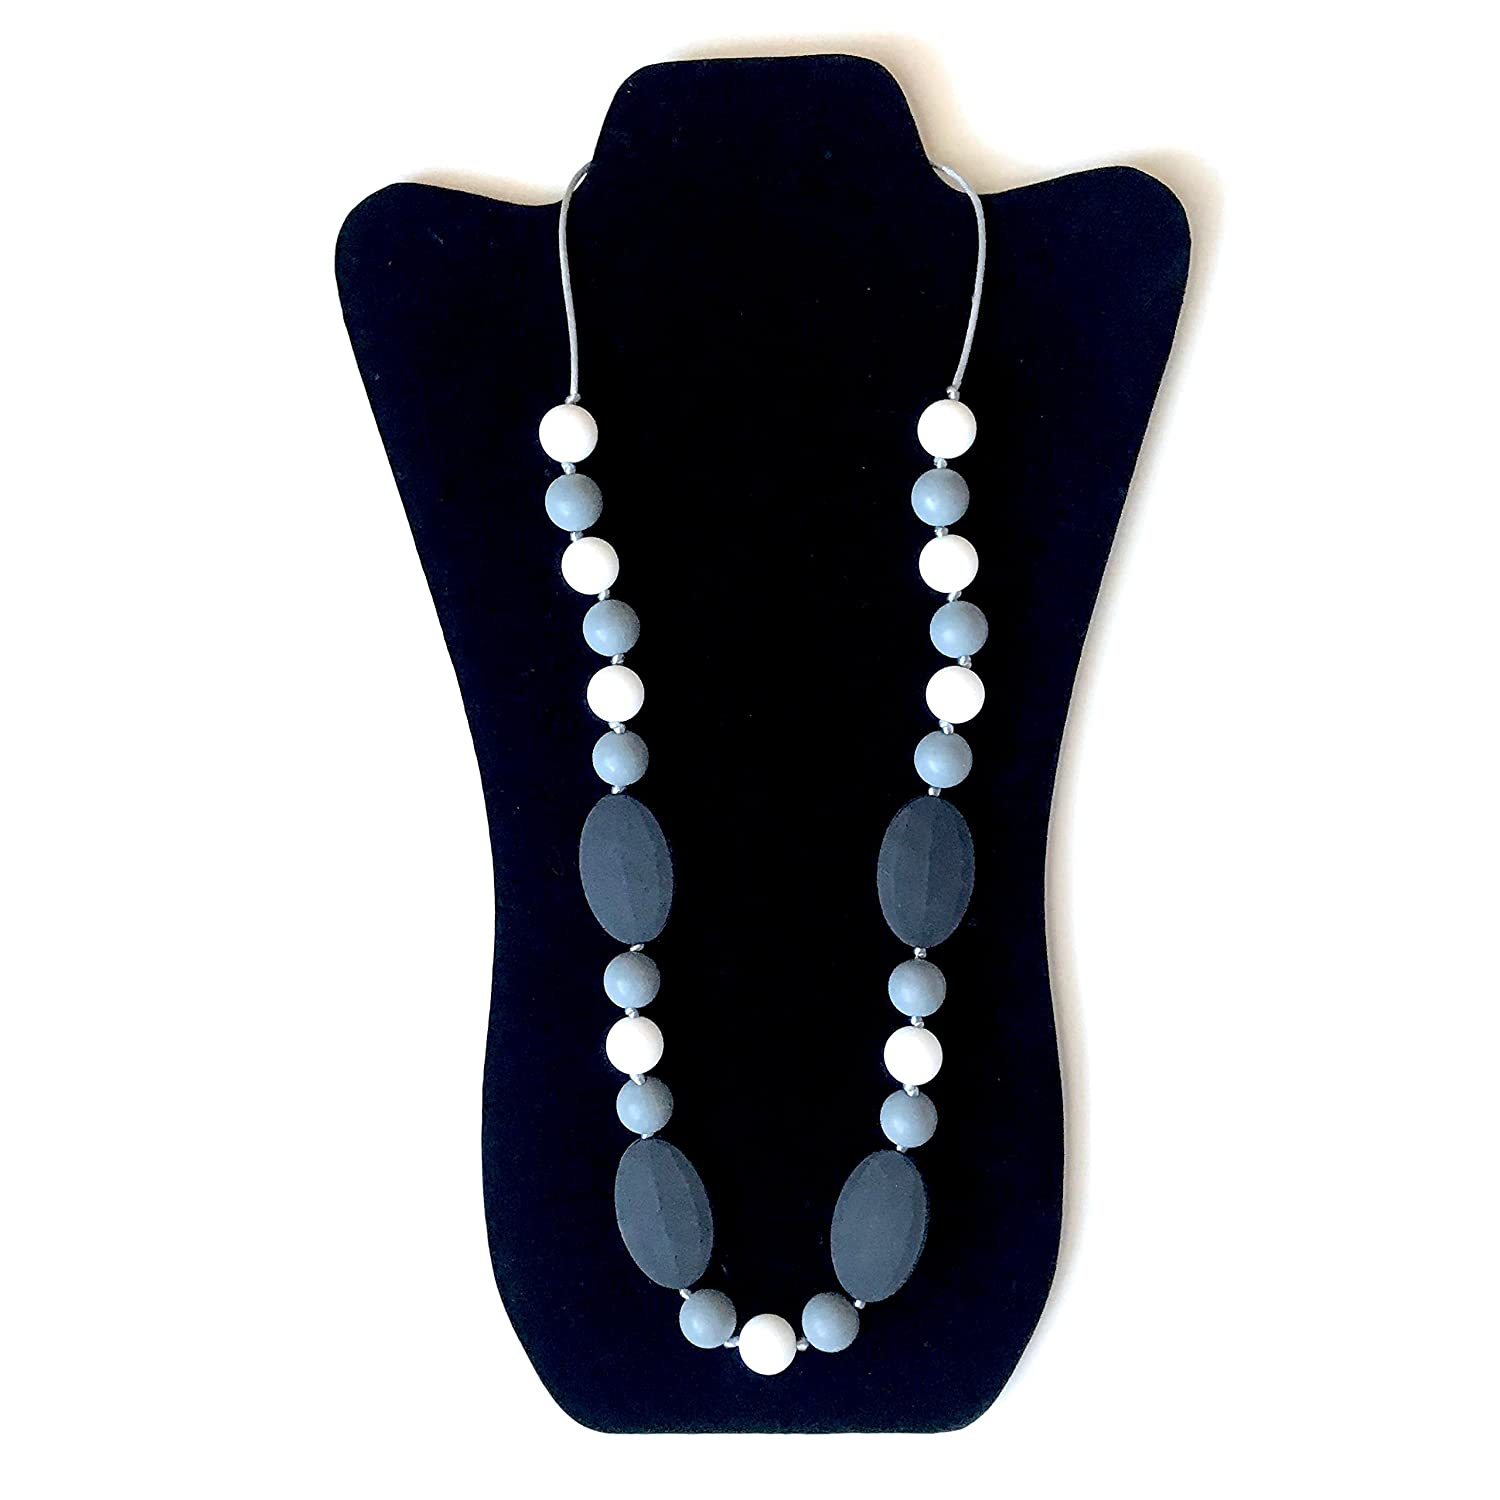 Silicone Baby Teether Nursing Necklace with BPA Free Chewbeads Teething Necklace for Moms to wear Elegant